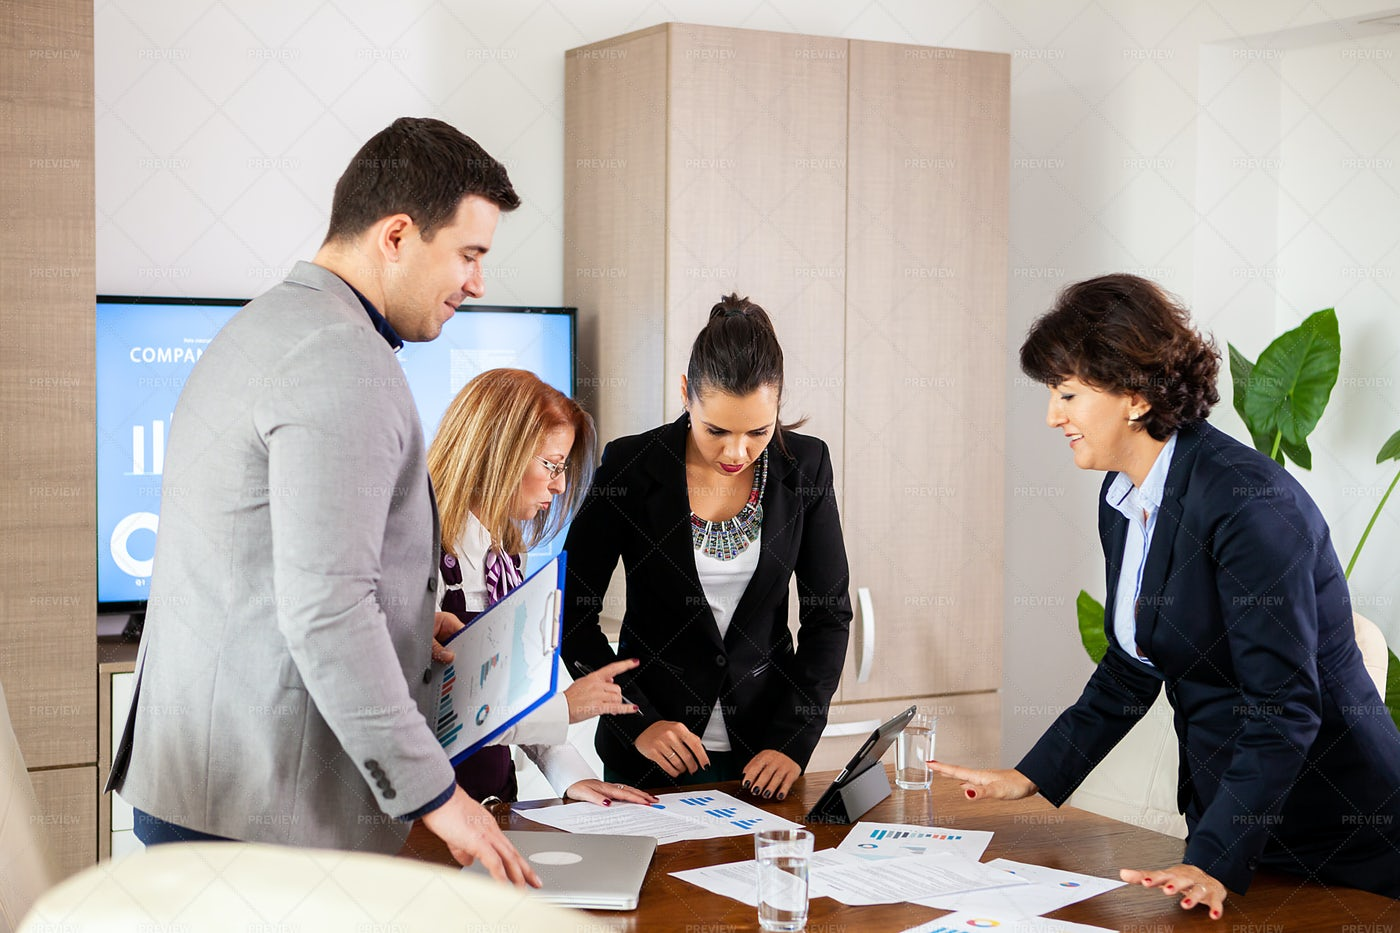 Brainstorming Meeting In Conference Room: Stock Photos